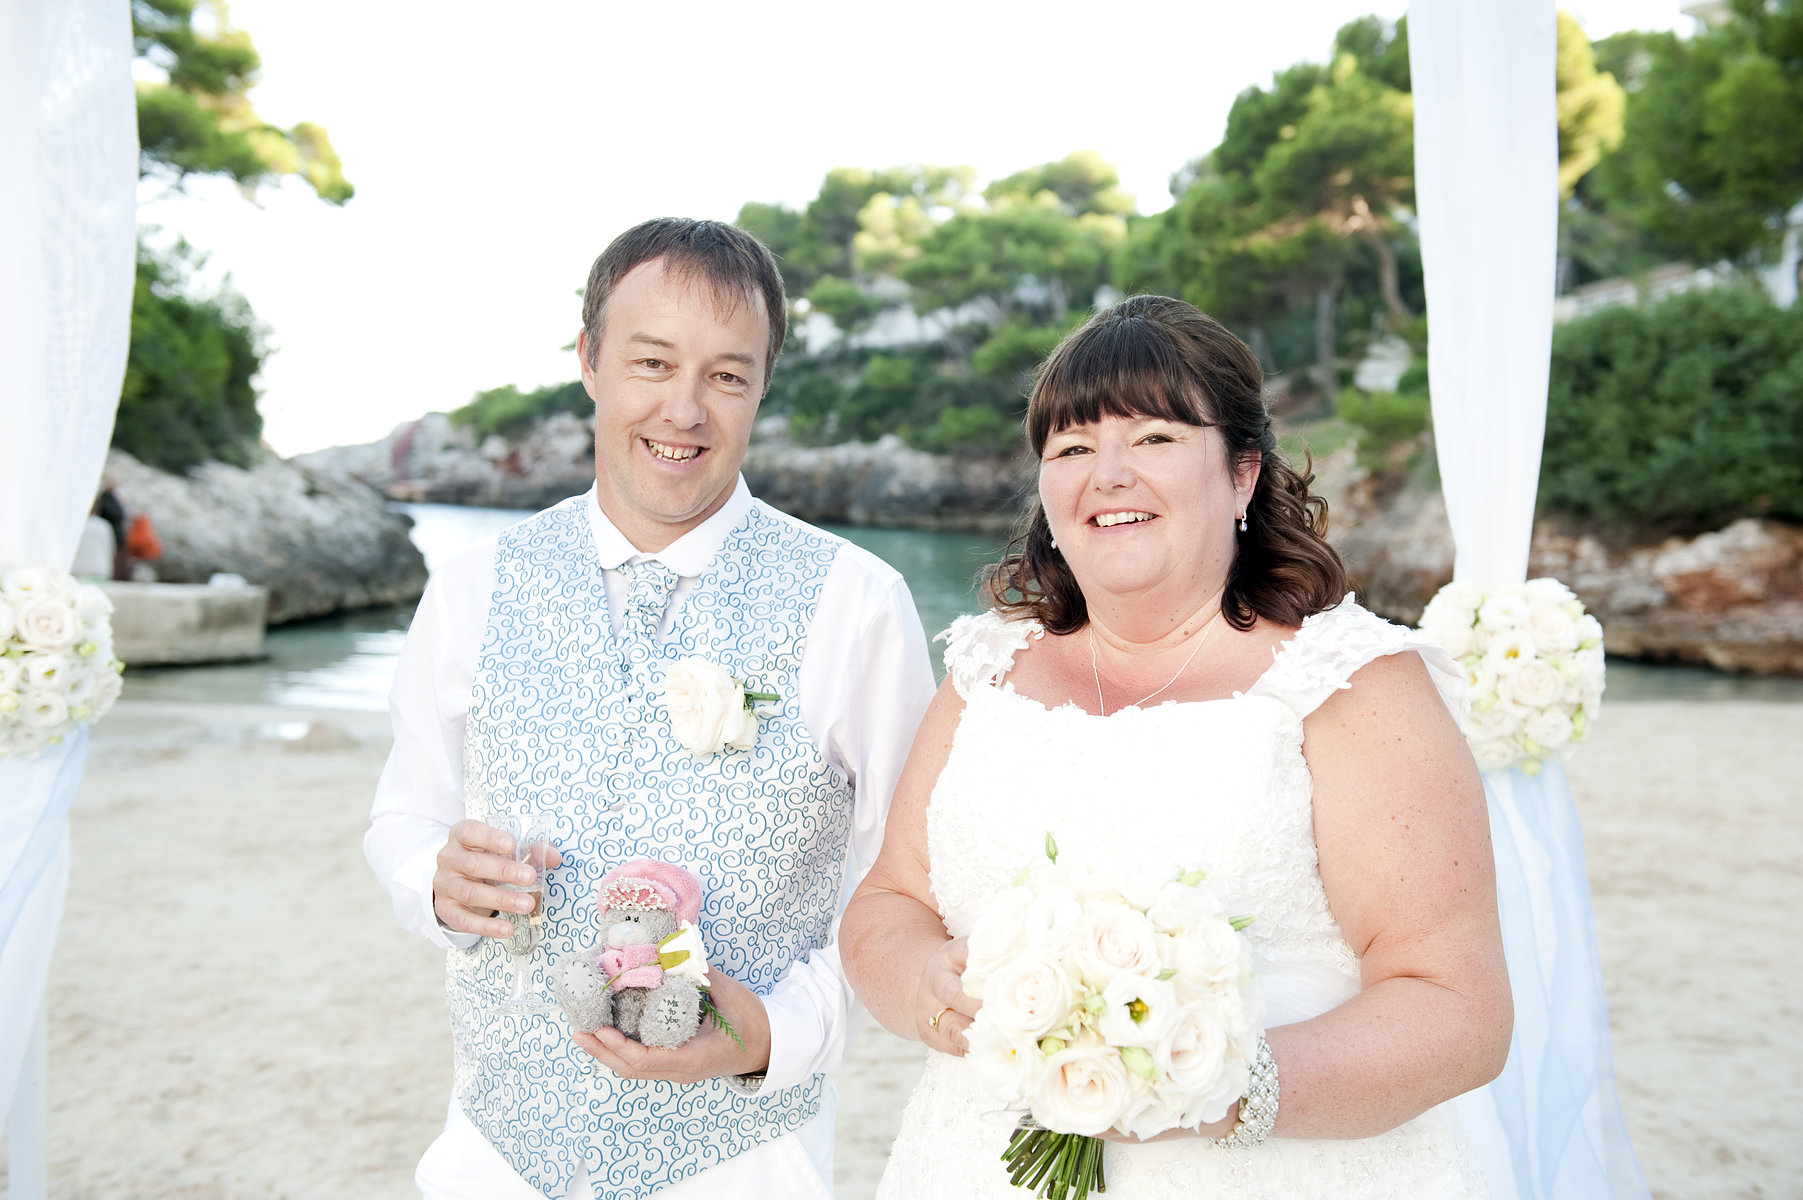 Janet & Keith // Wedding 2013